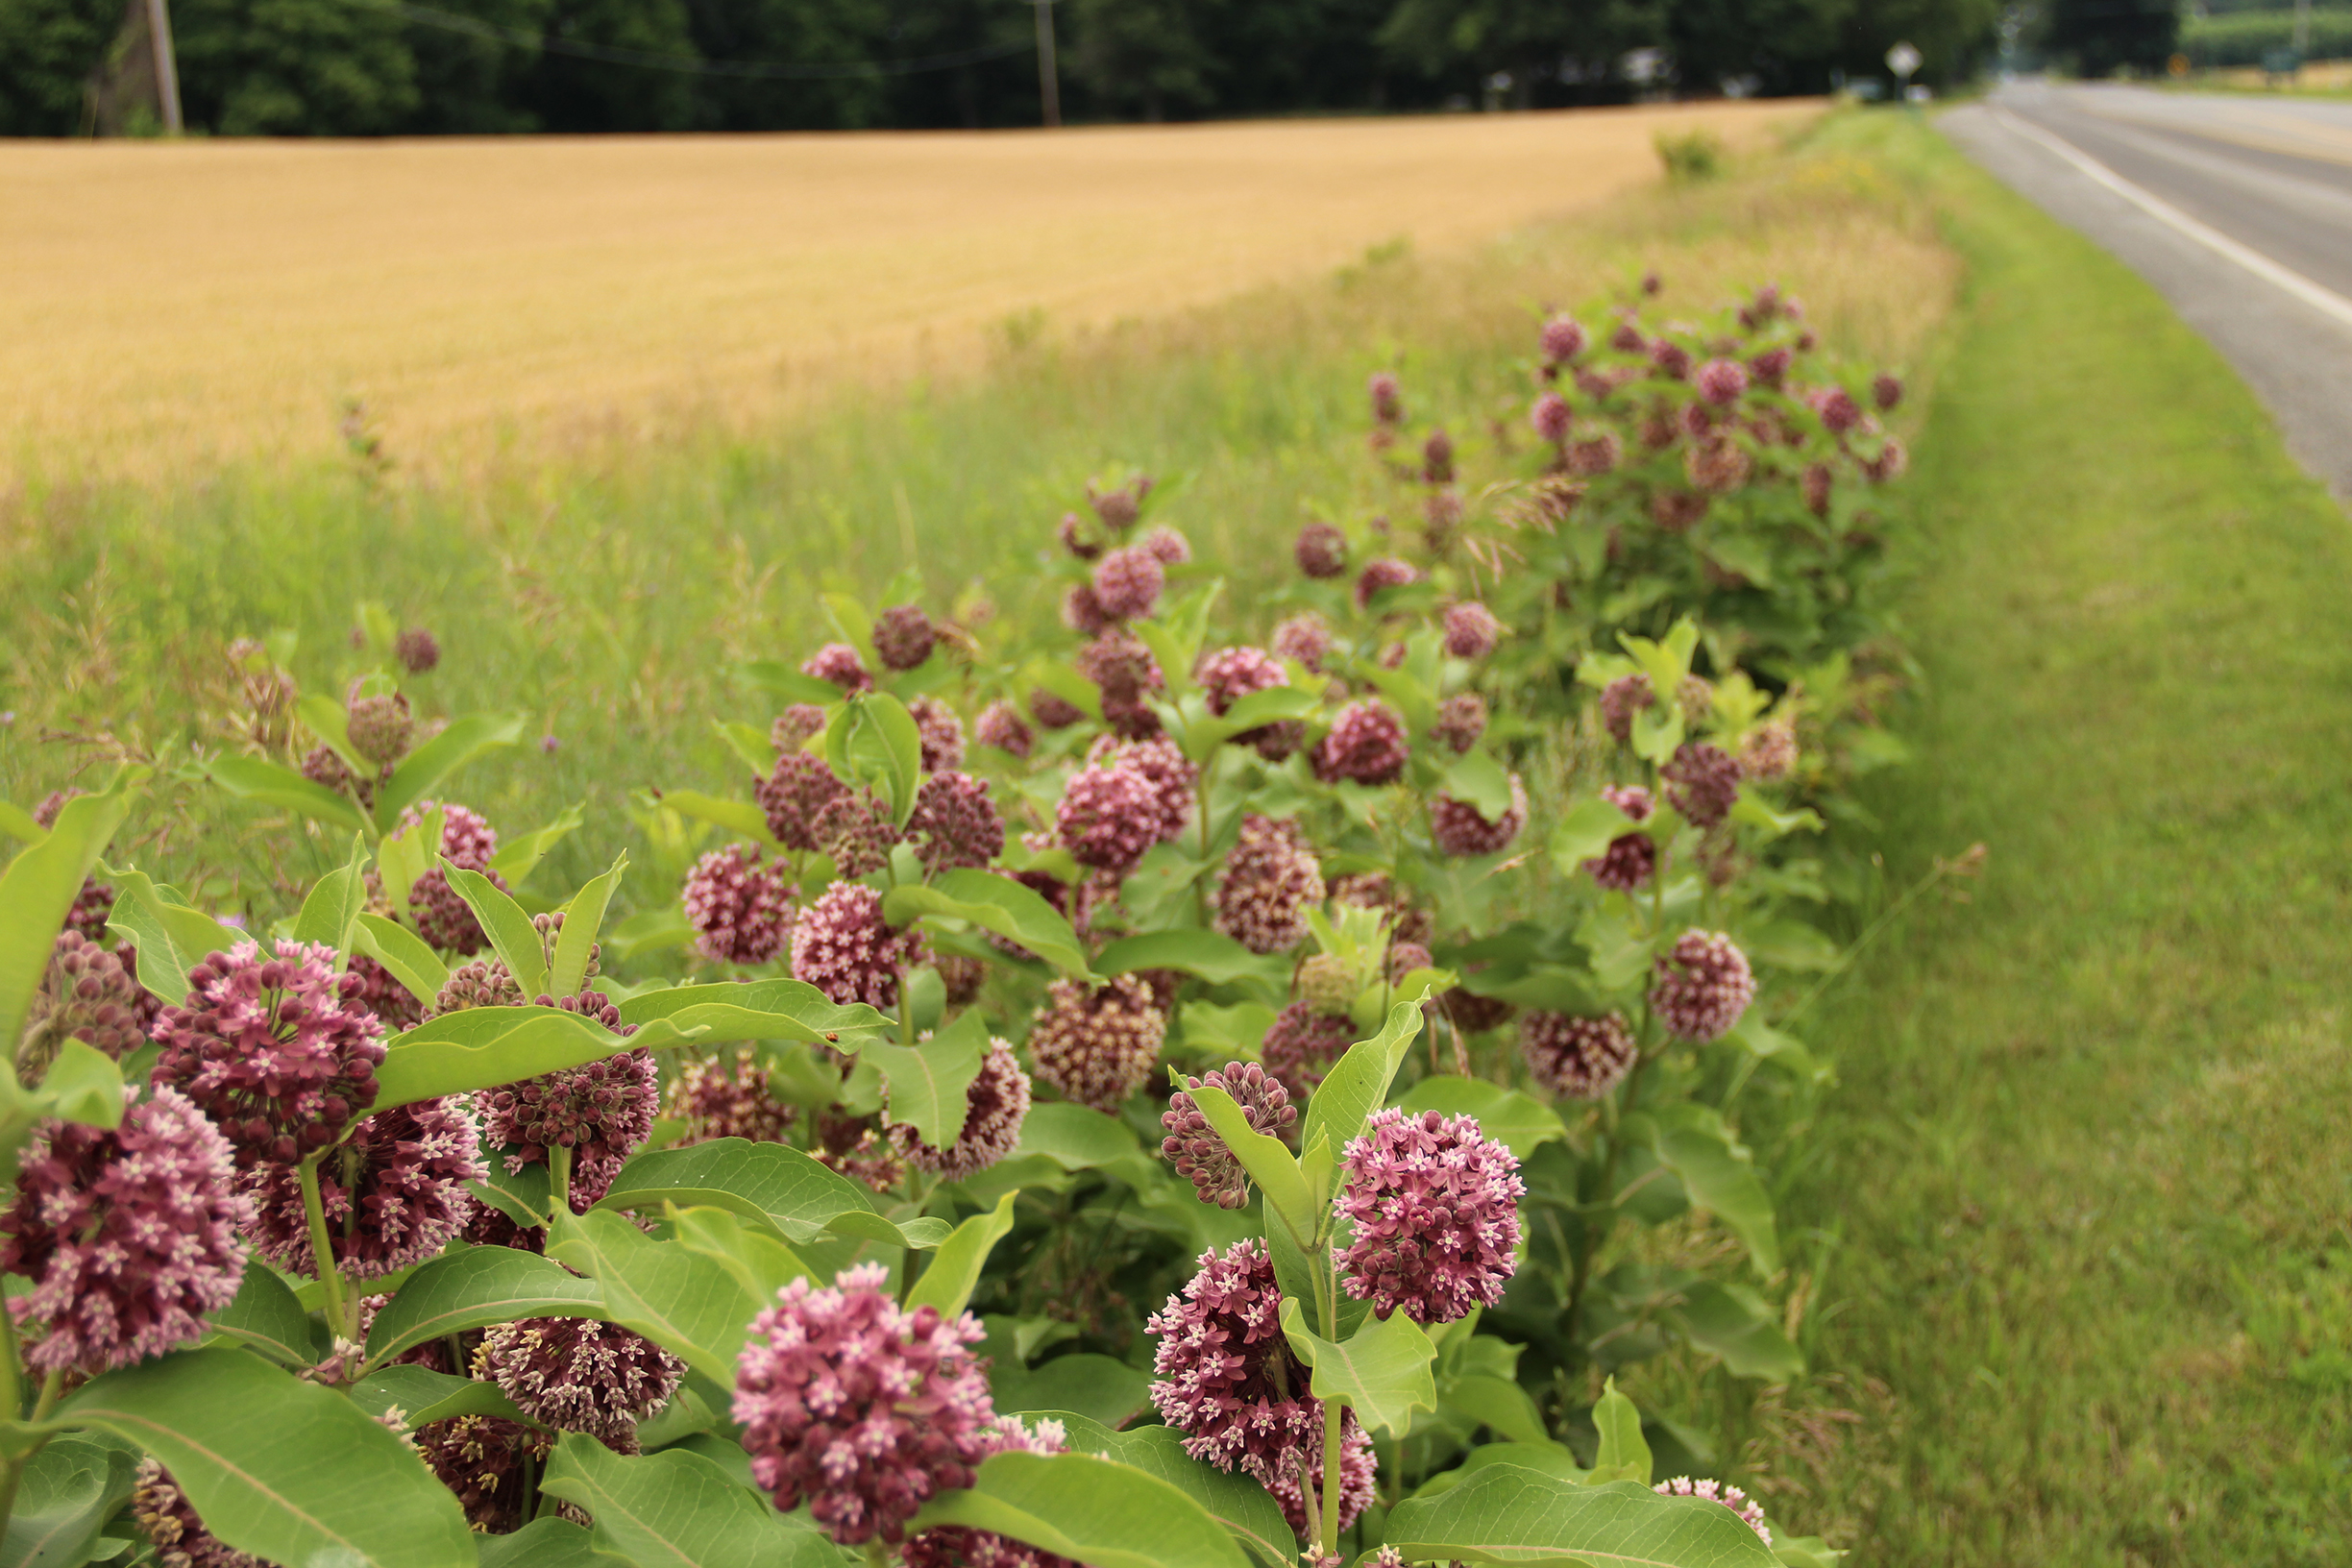 Ball-shaped, purple flower heads of the milkweed growing in a ditch add color to this rural roadside